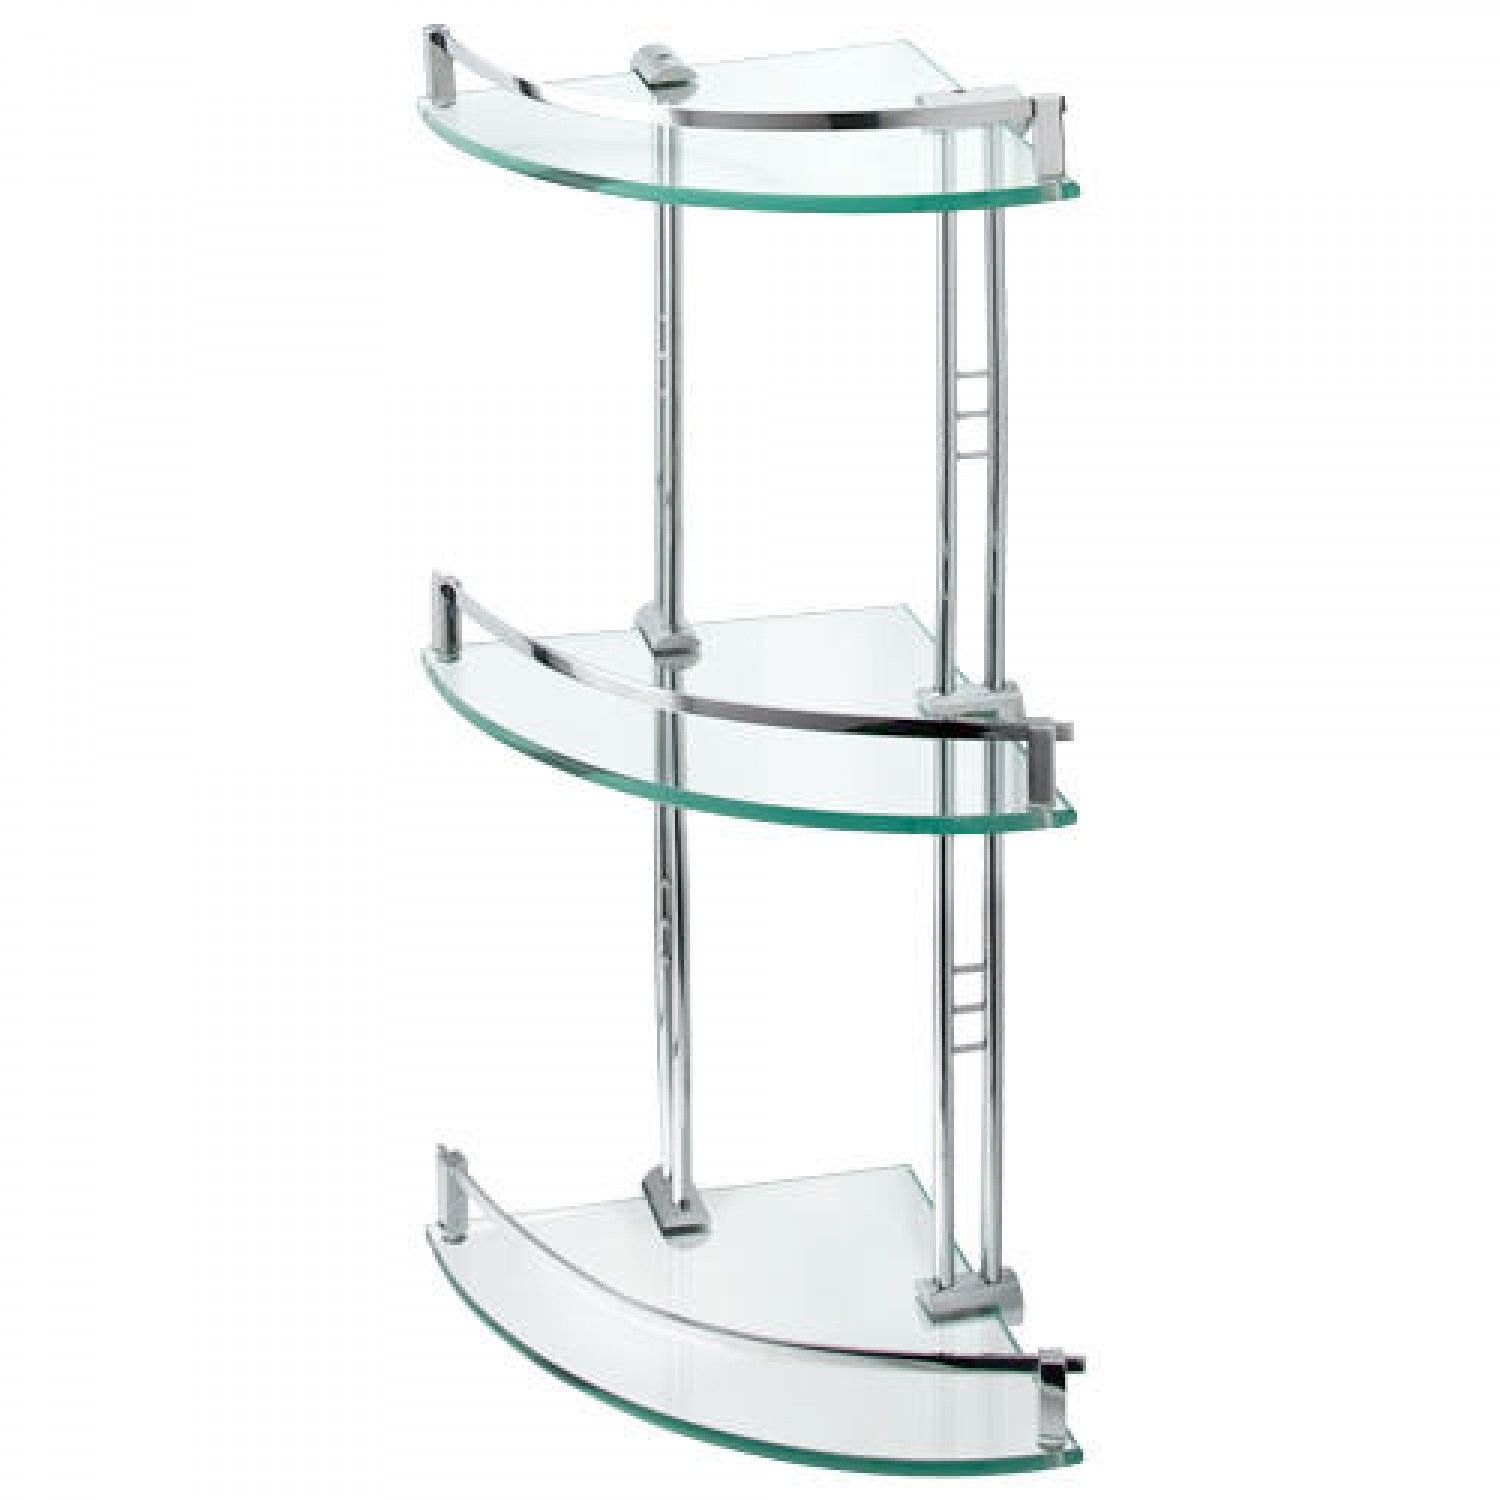 Engel Tempered Glass Corner Shelf Three Shelves Glass Corner Shelves Glass Shelves Kitchen Corner Shelves